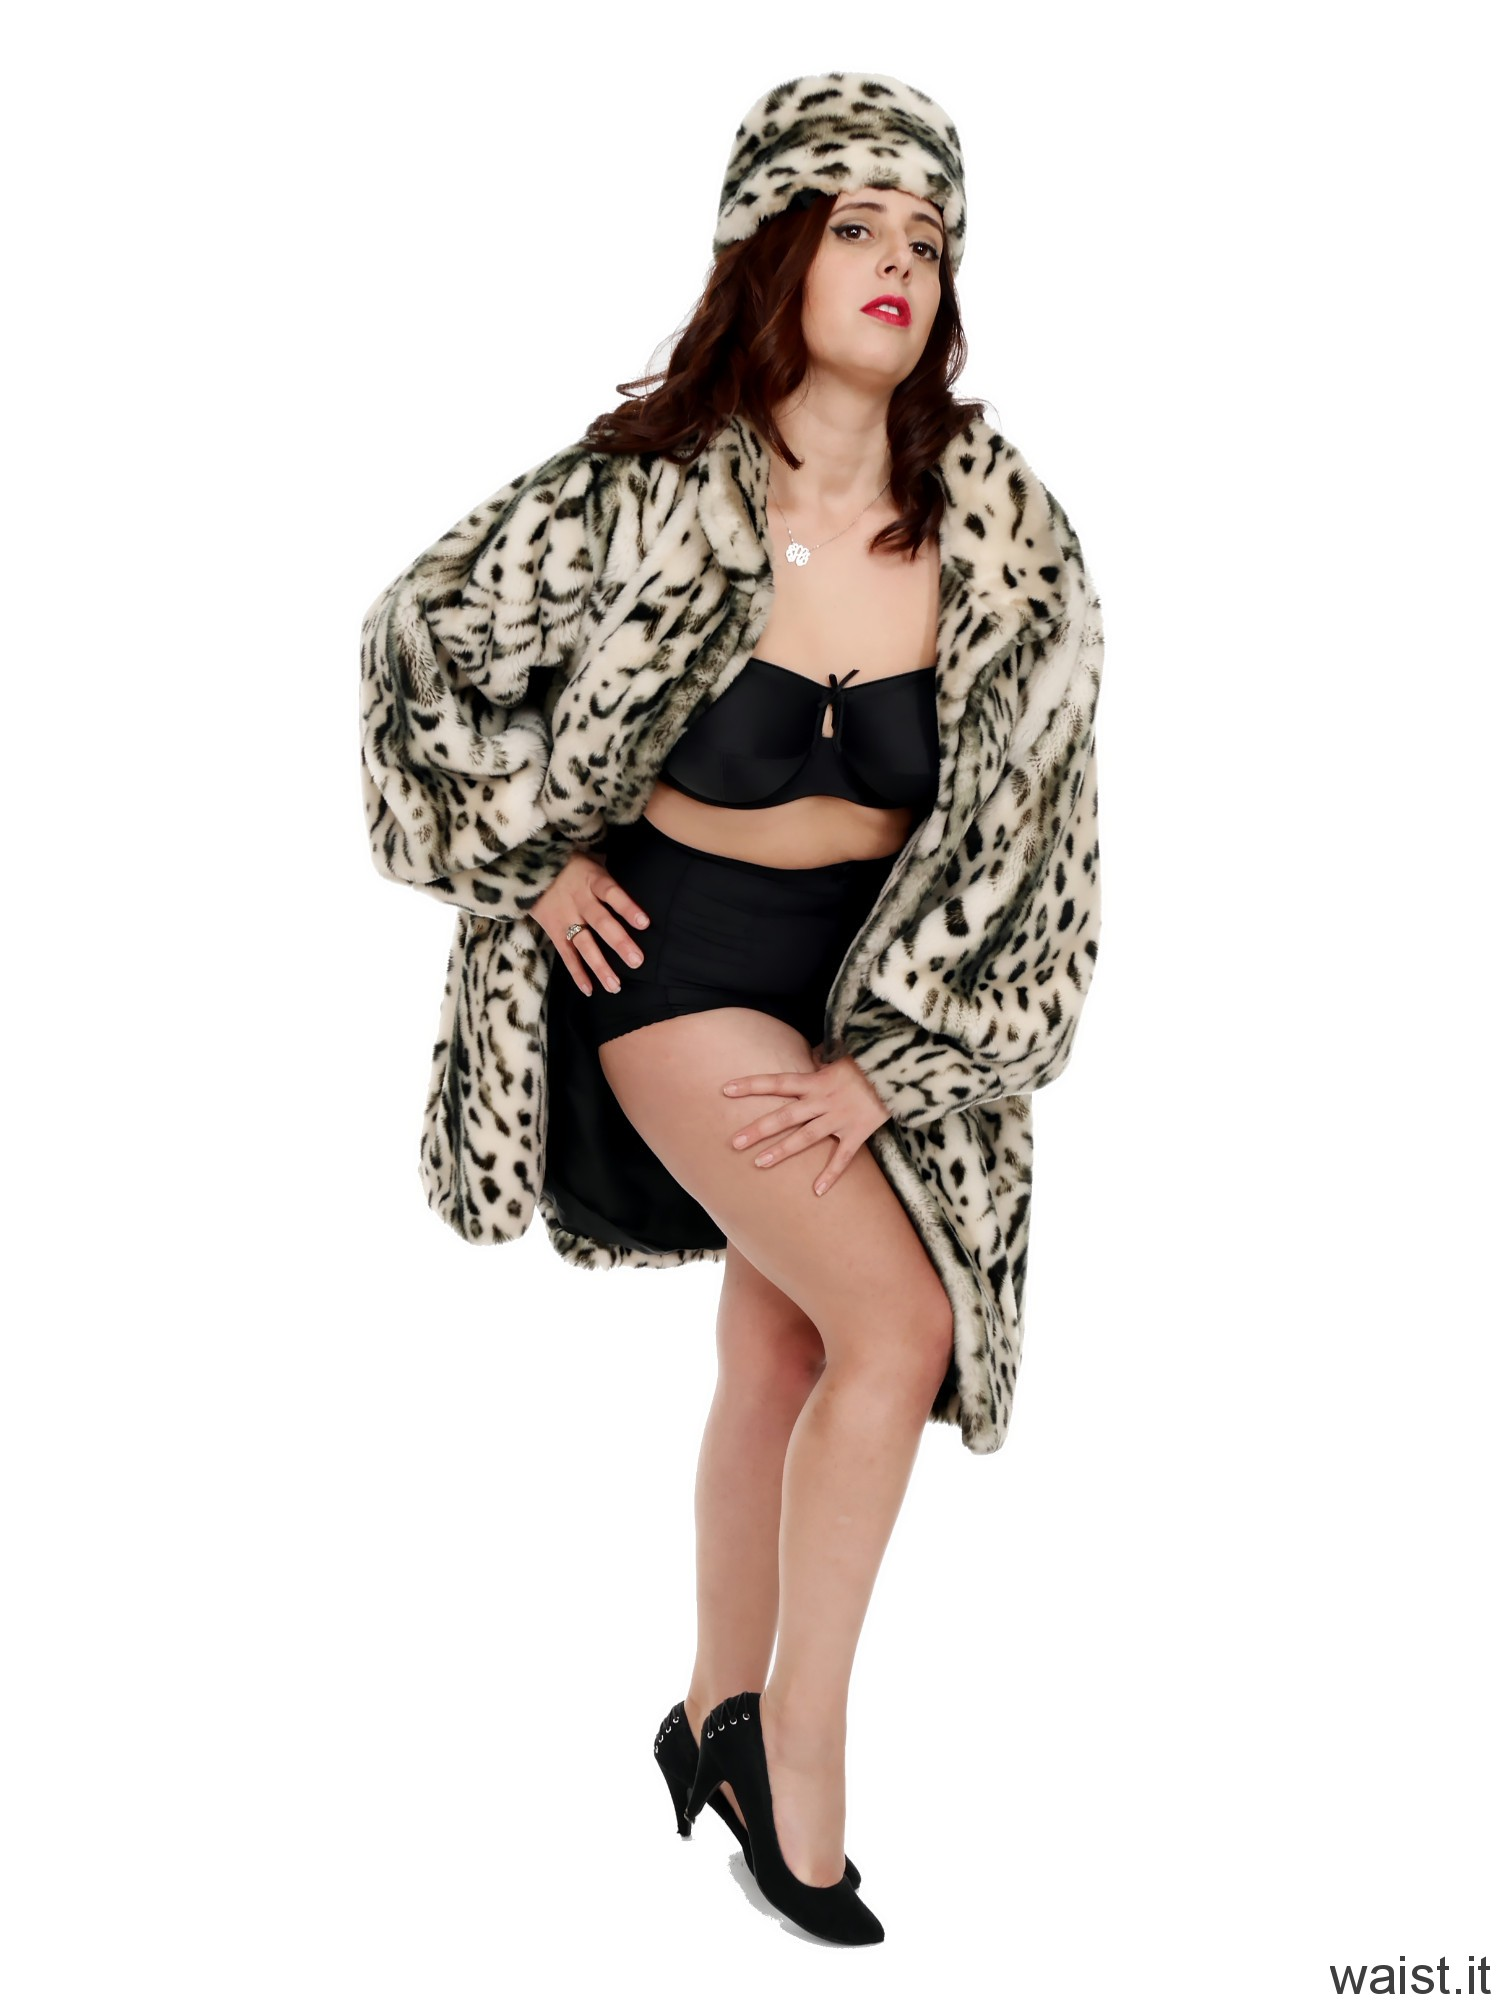 2016-11-23 AlexH fur coat bra and girdle